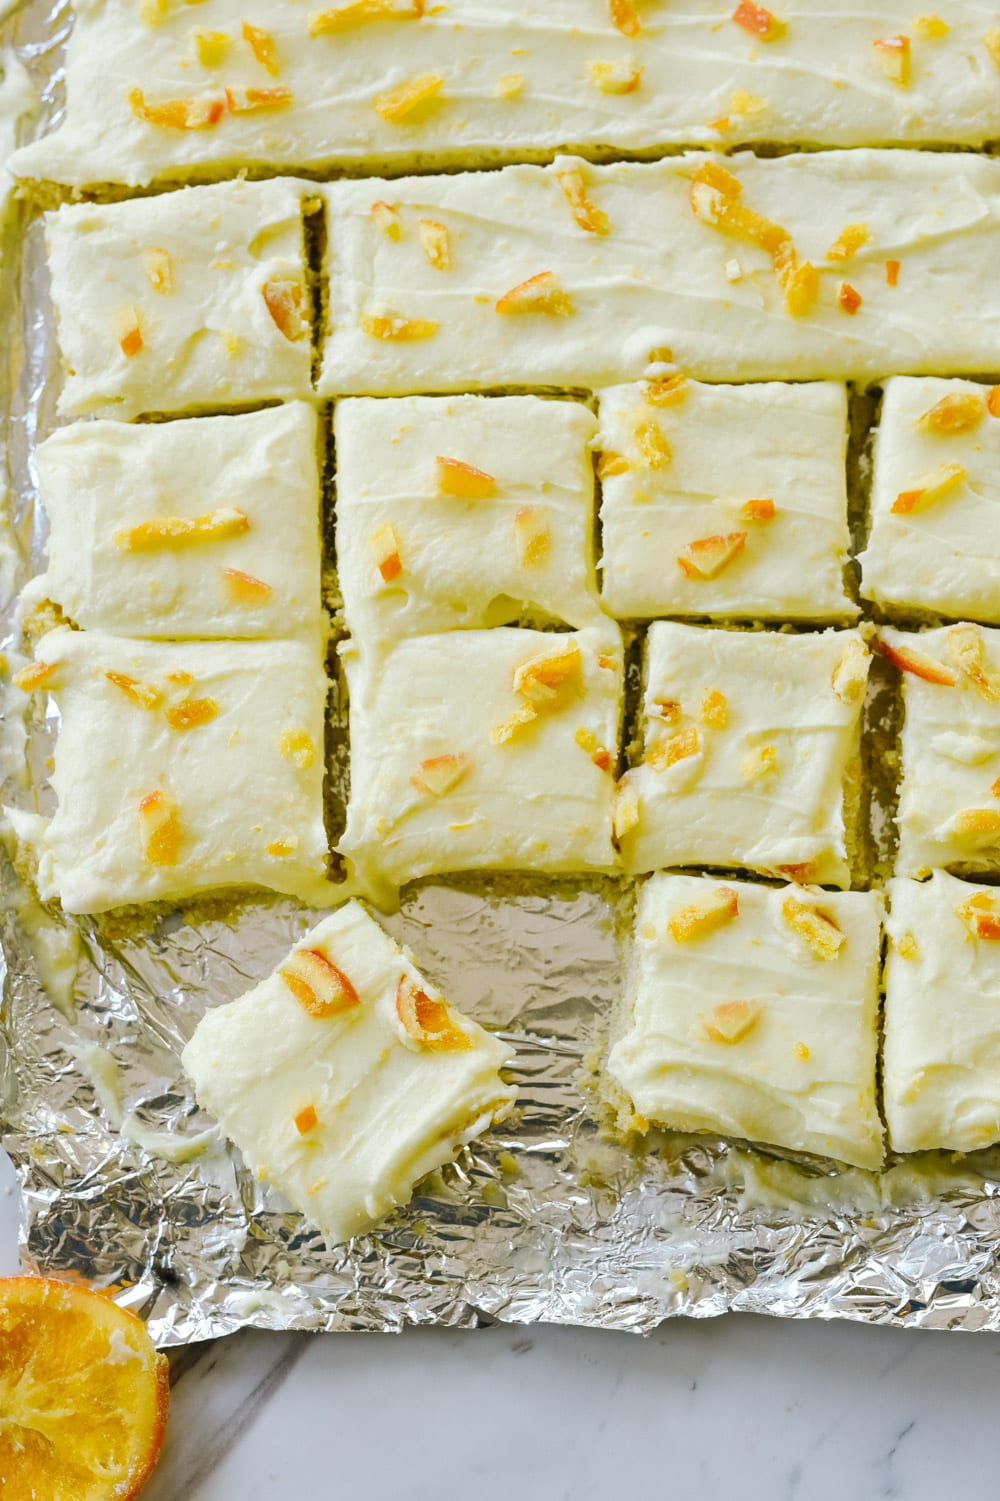 Sugar Cookie Bars cut into squares